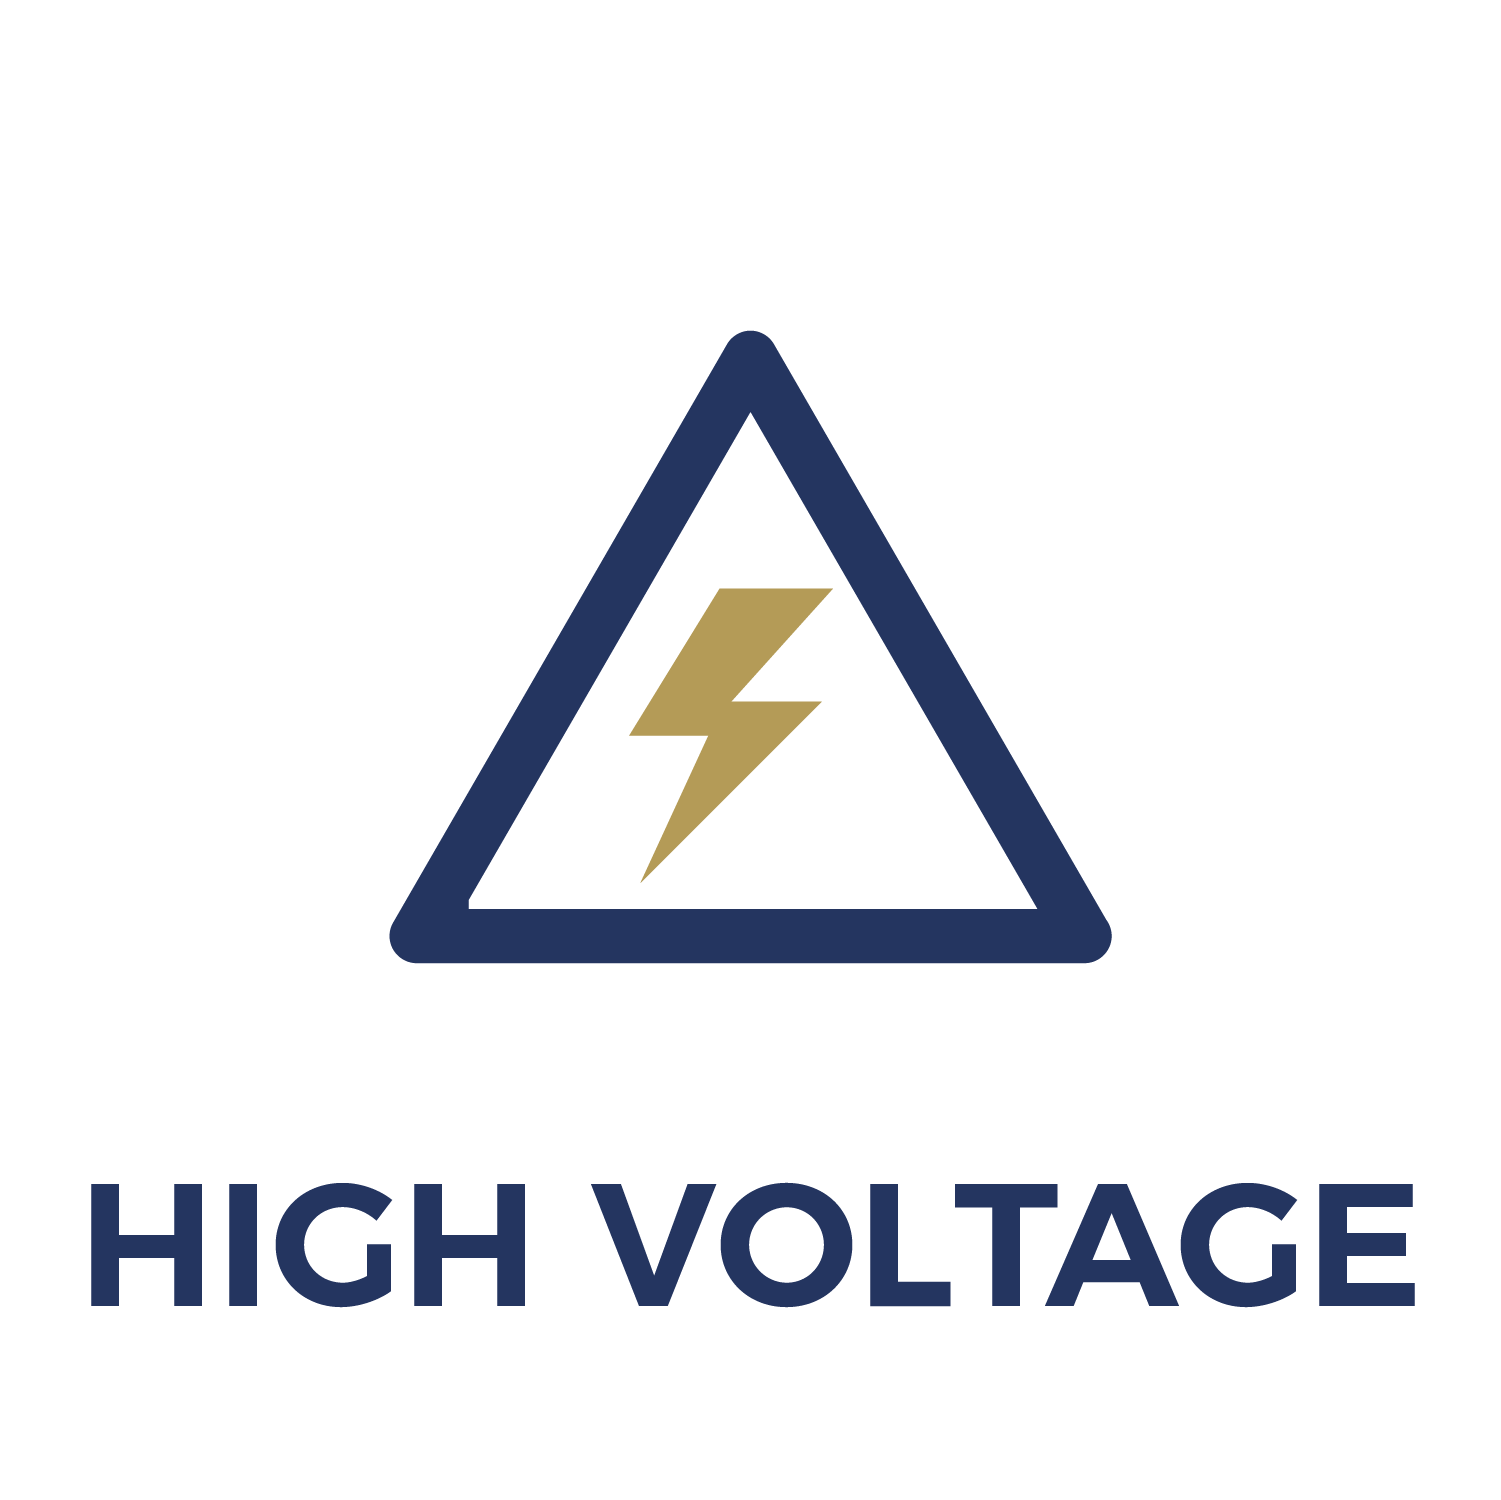 High-Voltage.png